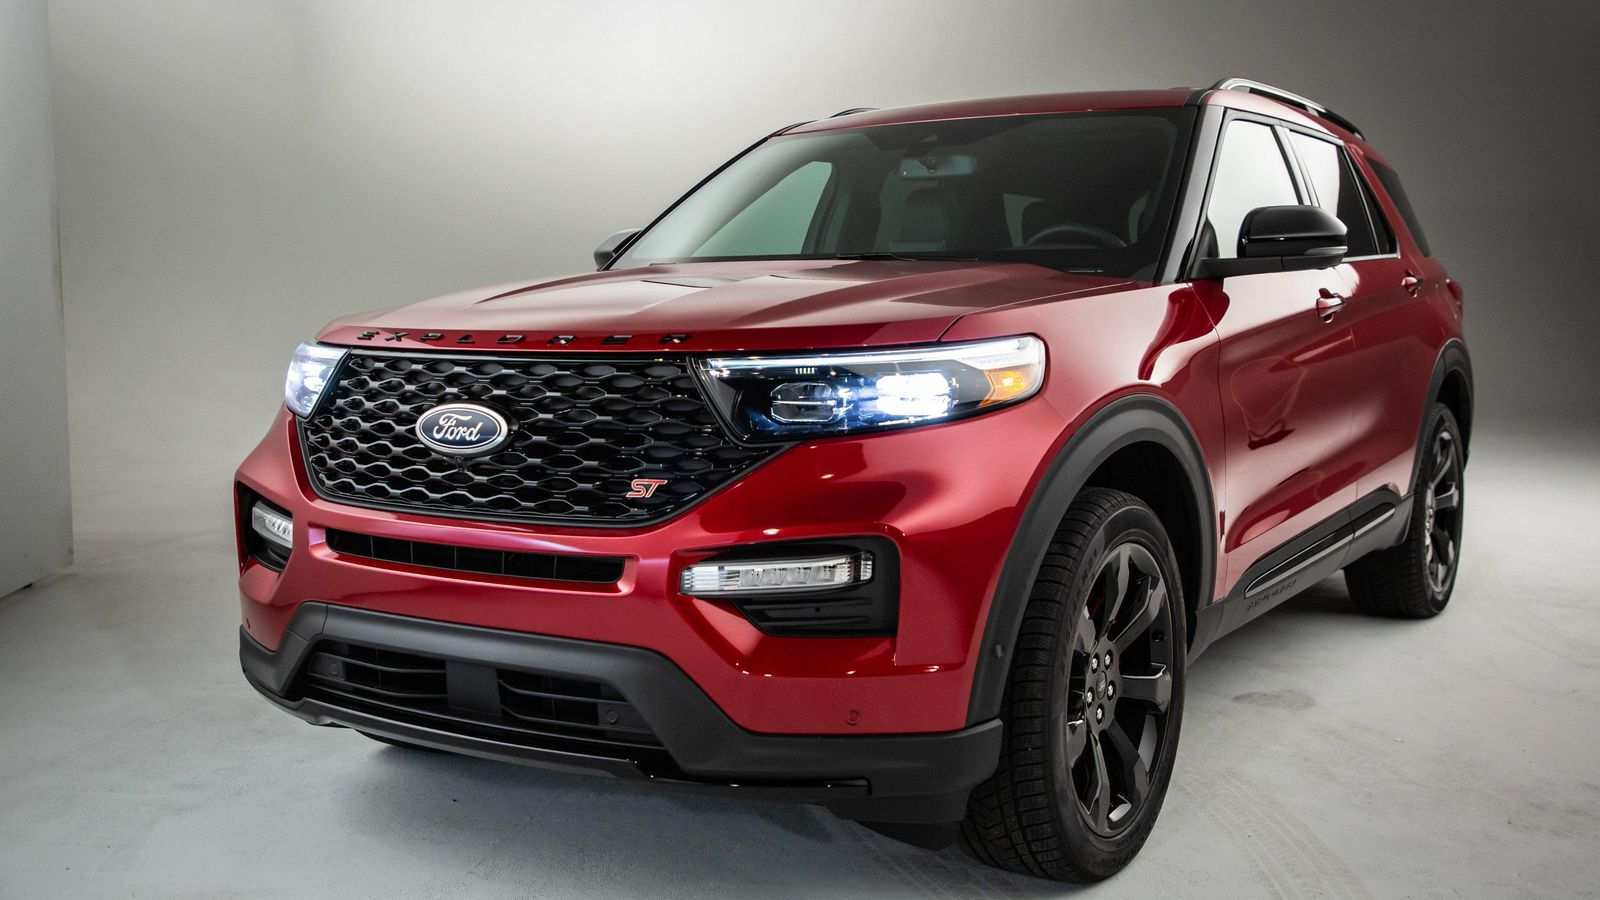 37 New 2020 Ford Explorer Sports Model